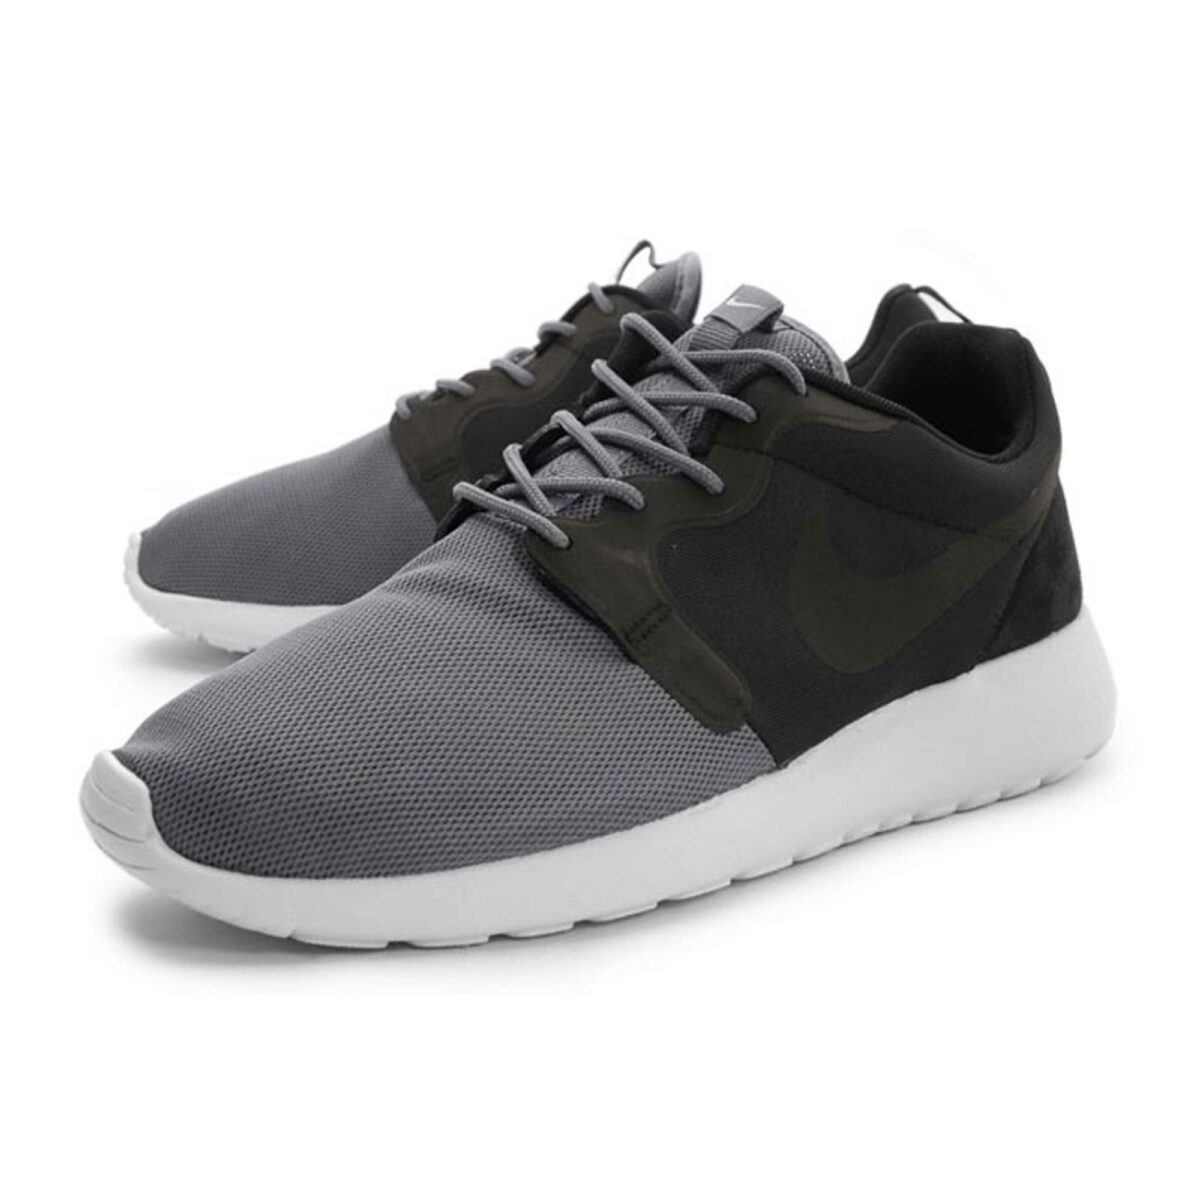 nike roshe run grey black 616325_001 купить